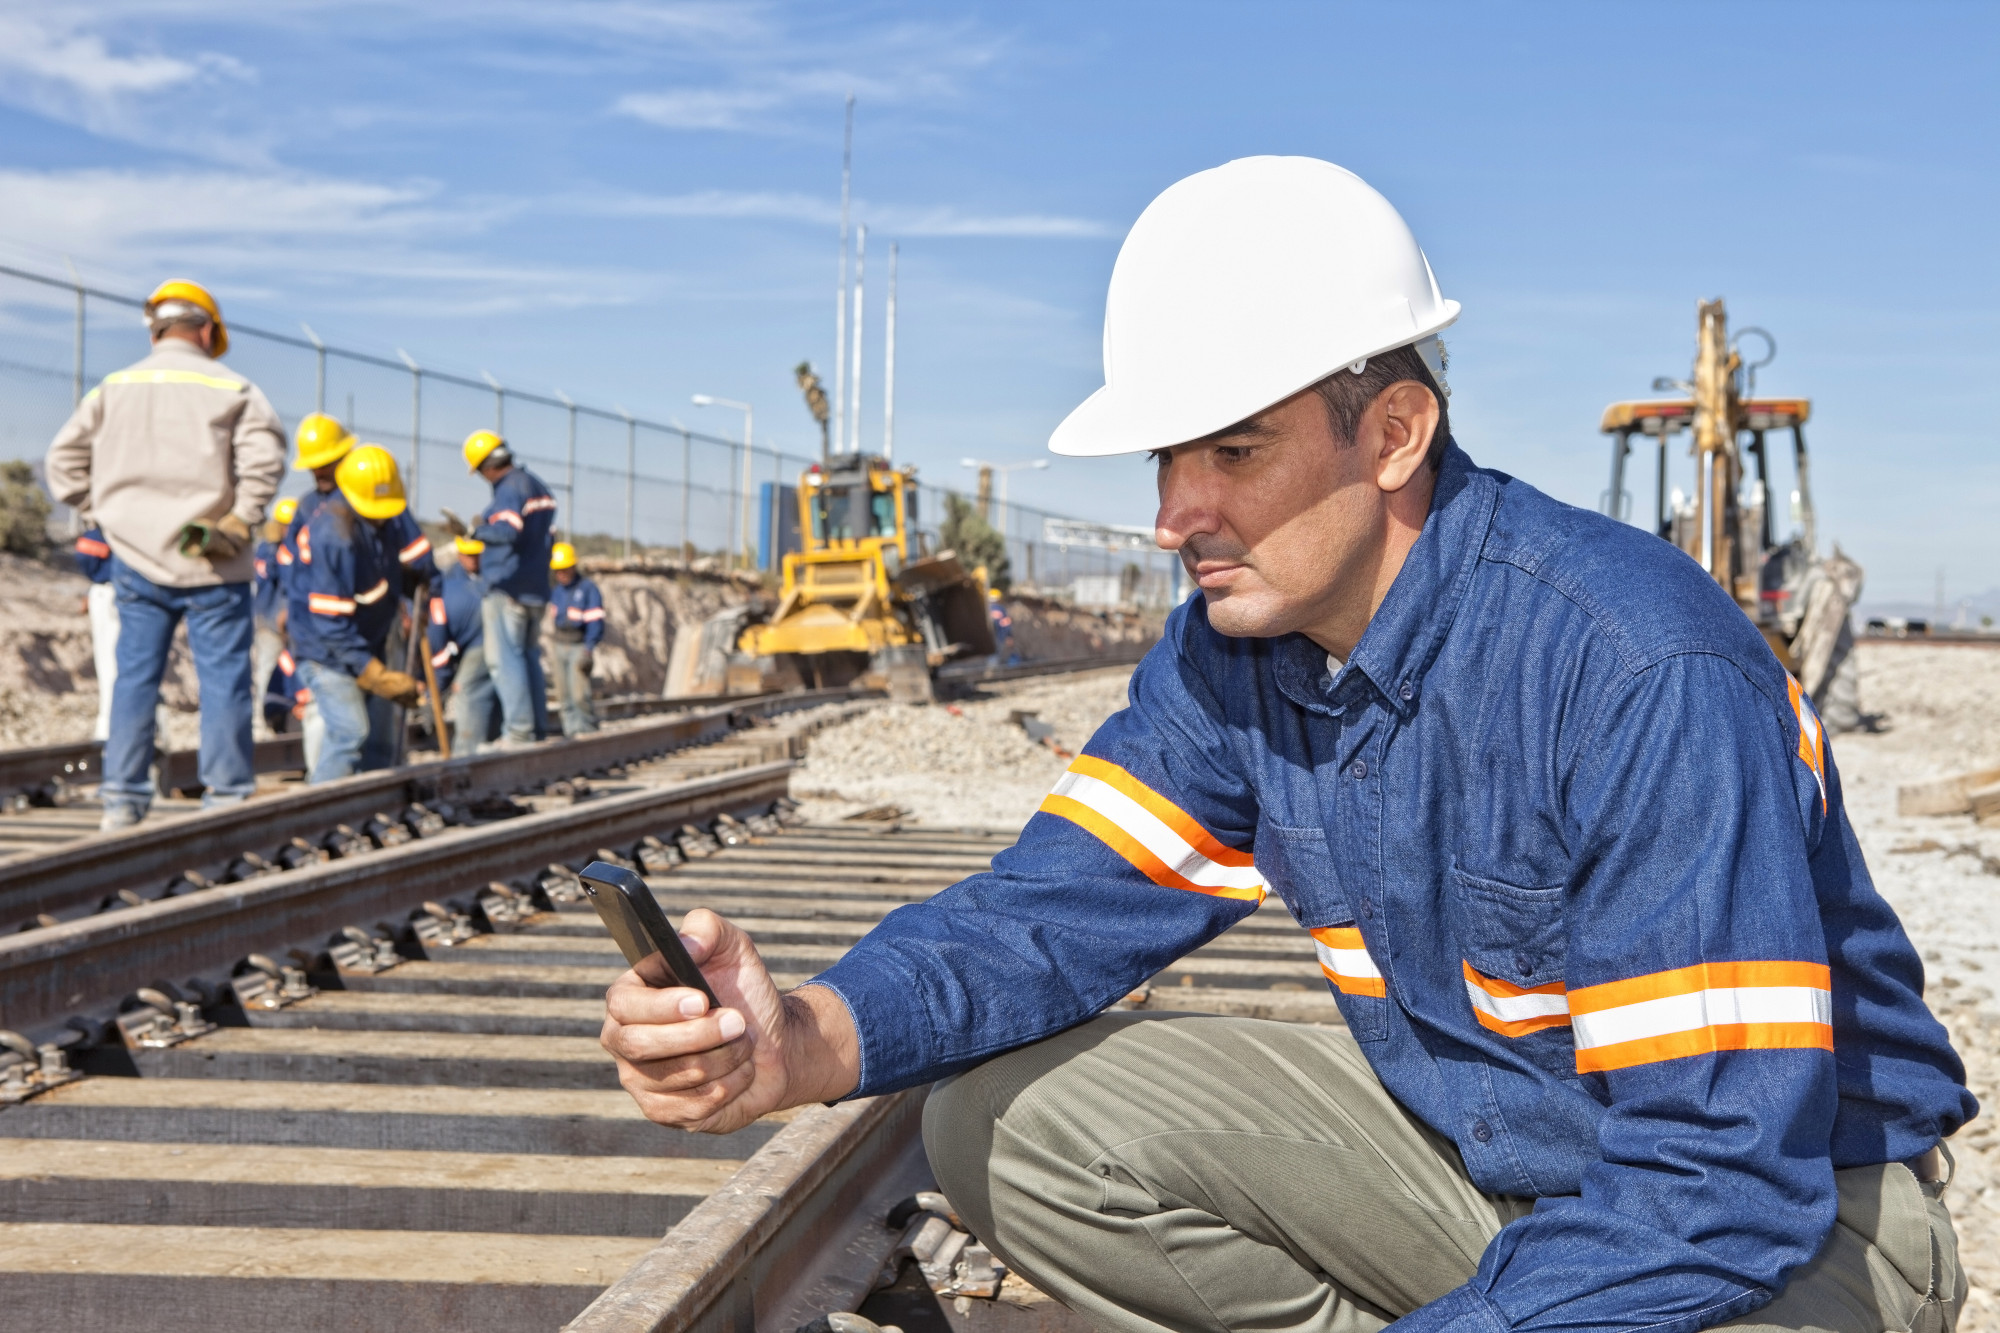 Engineer at rail site